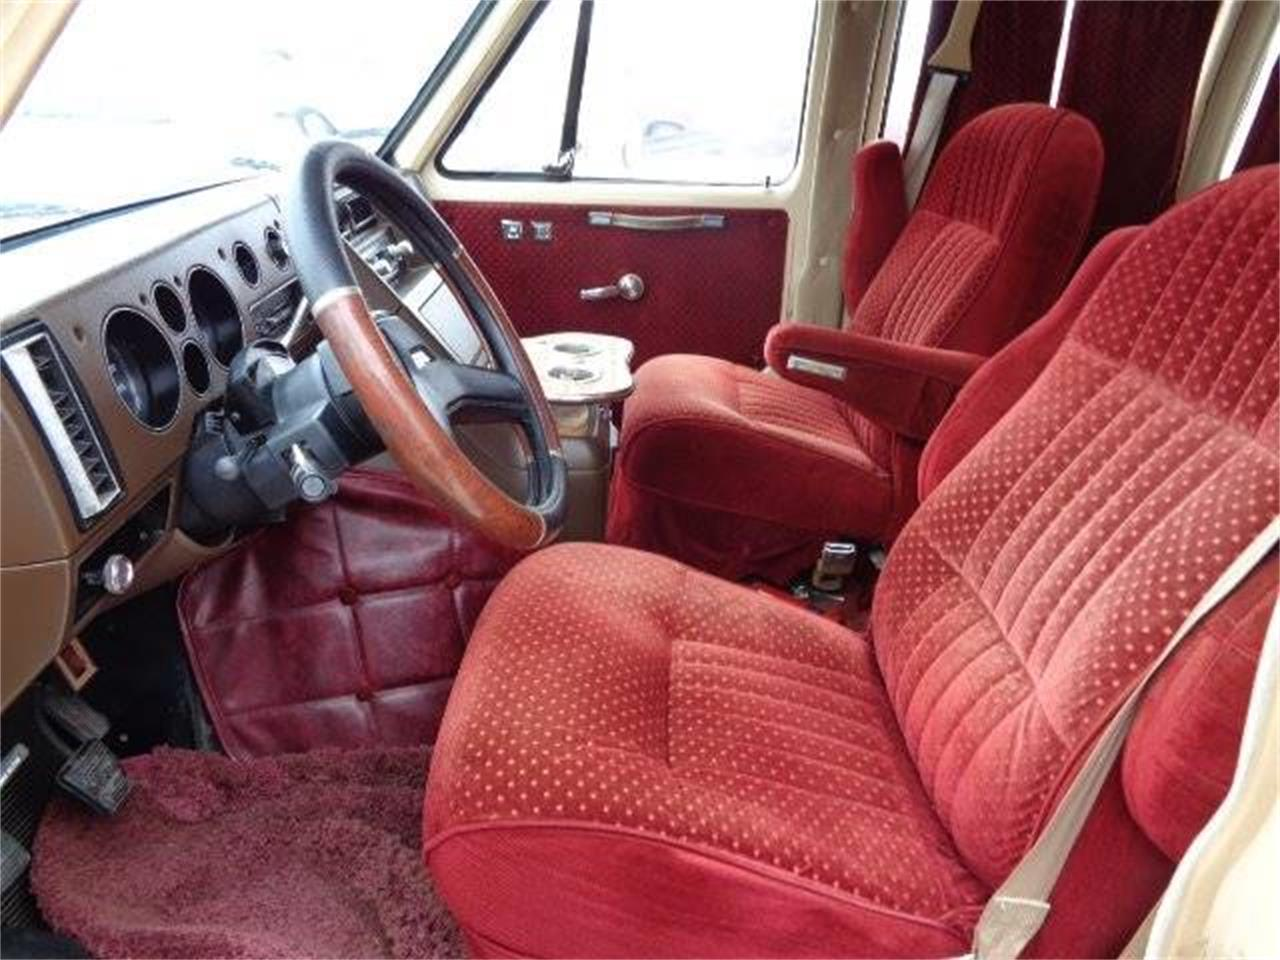 1986 Chevrolet G20 for sale in Staunton, IL – photo 3